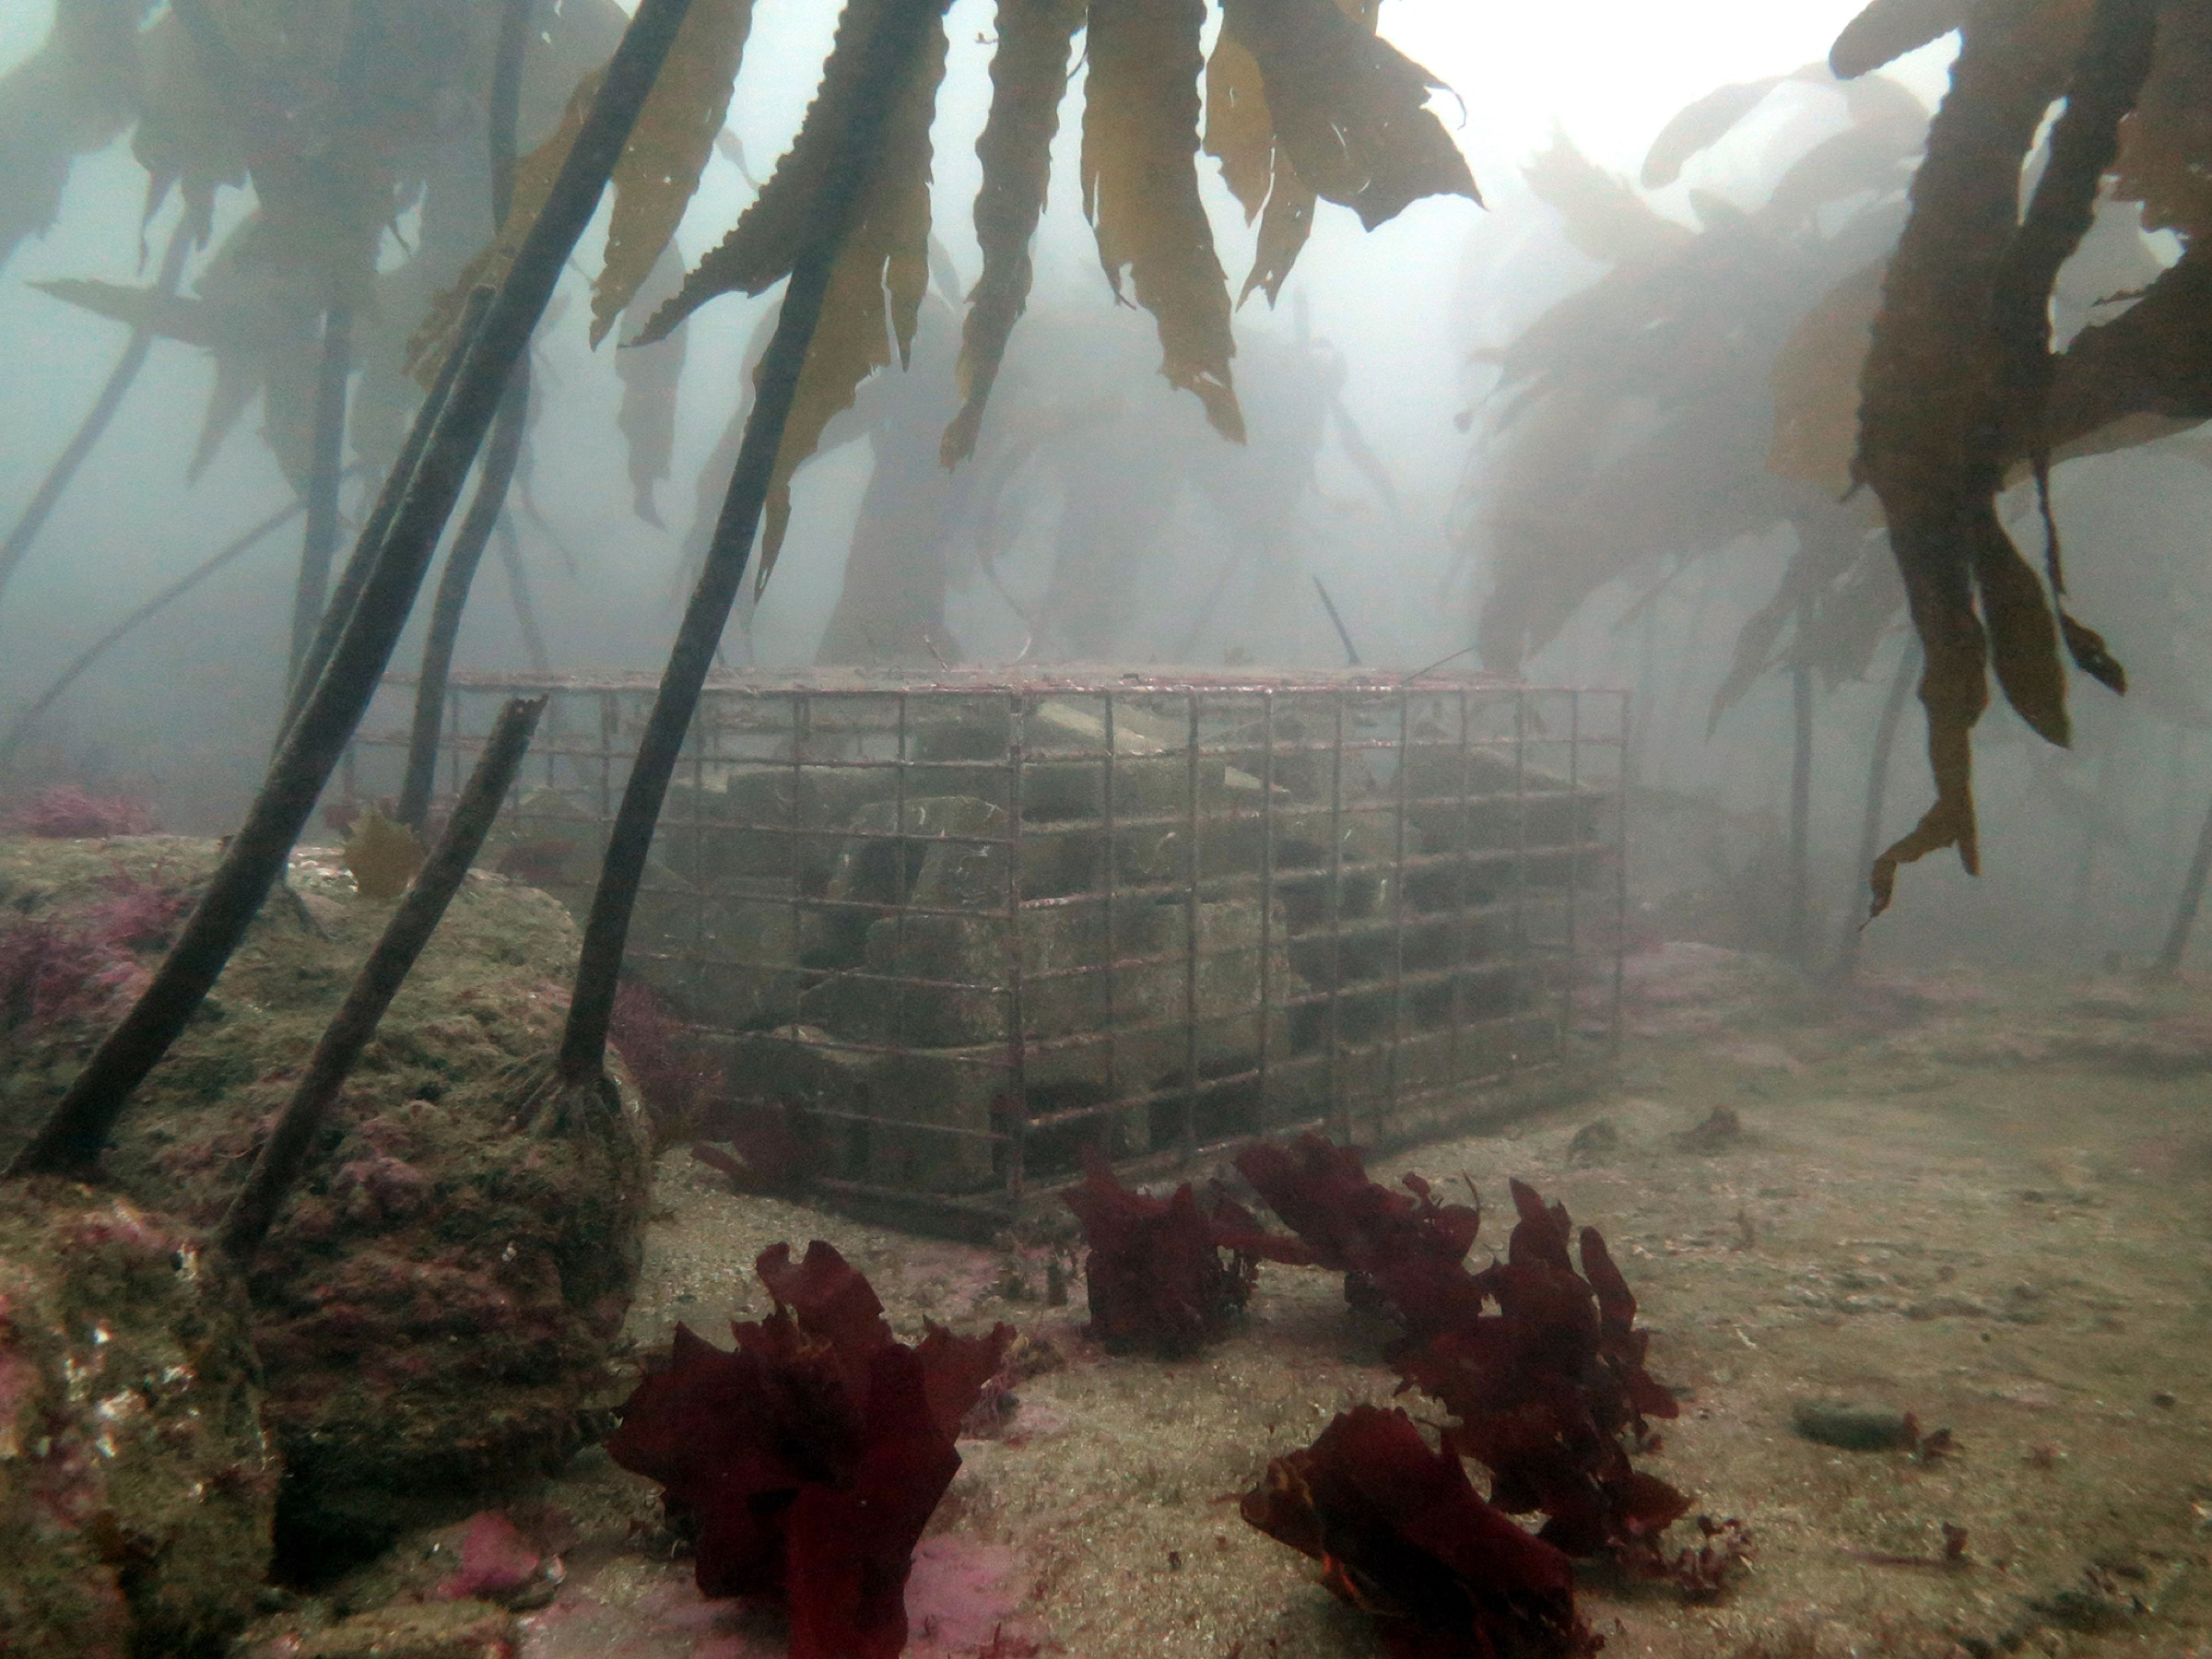 Researchers place baby abalone recruitment traps in Pallos Verdes. Photograph by A. Maguire/CDFW